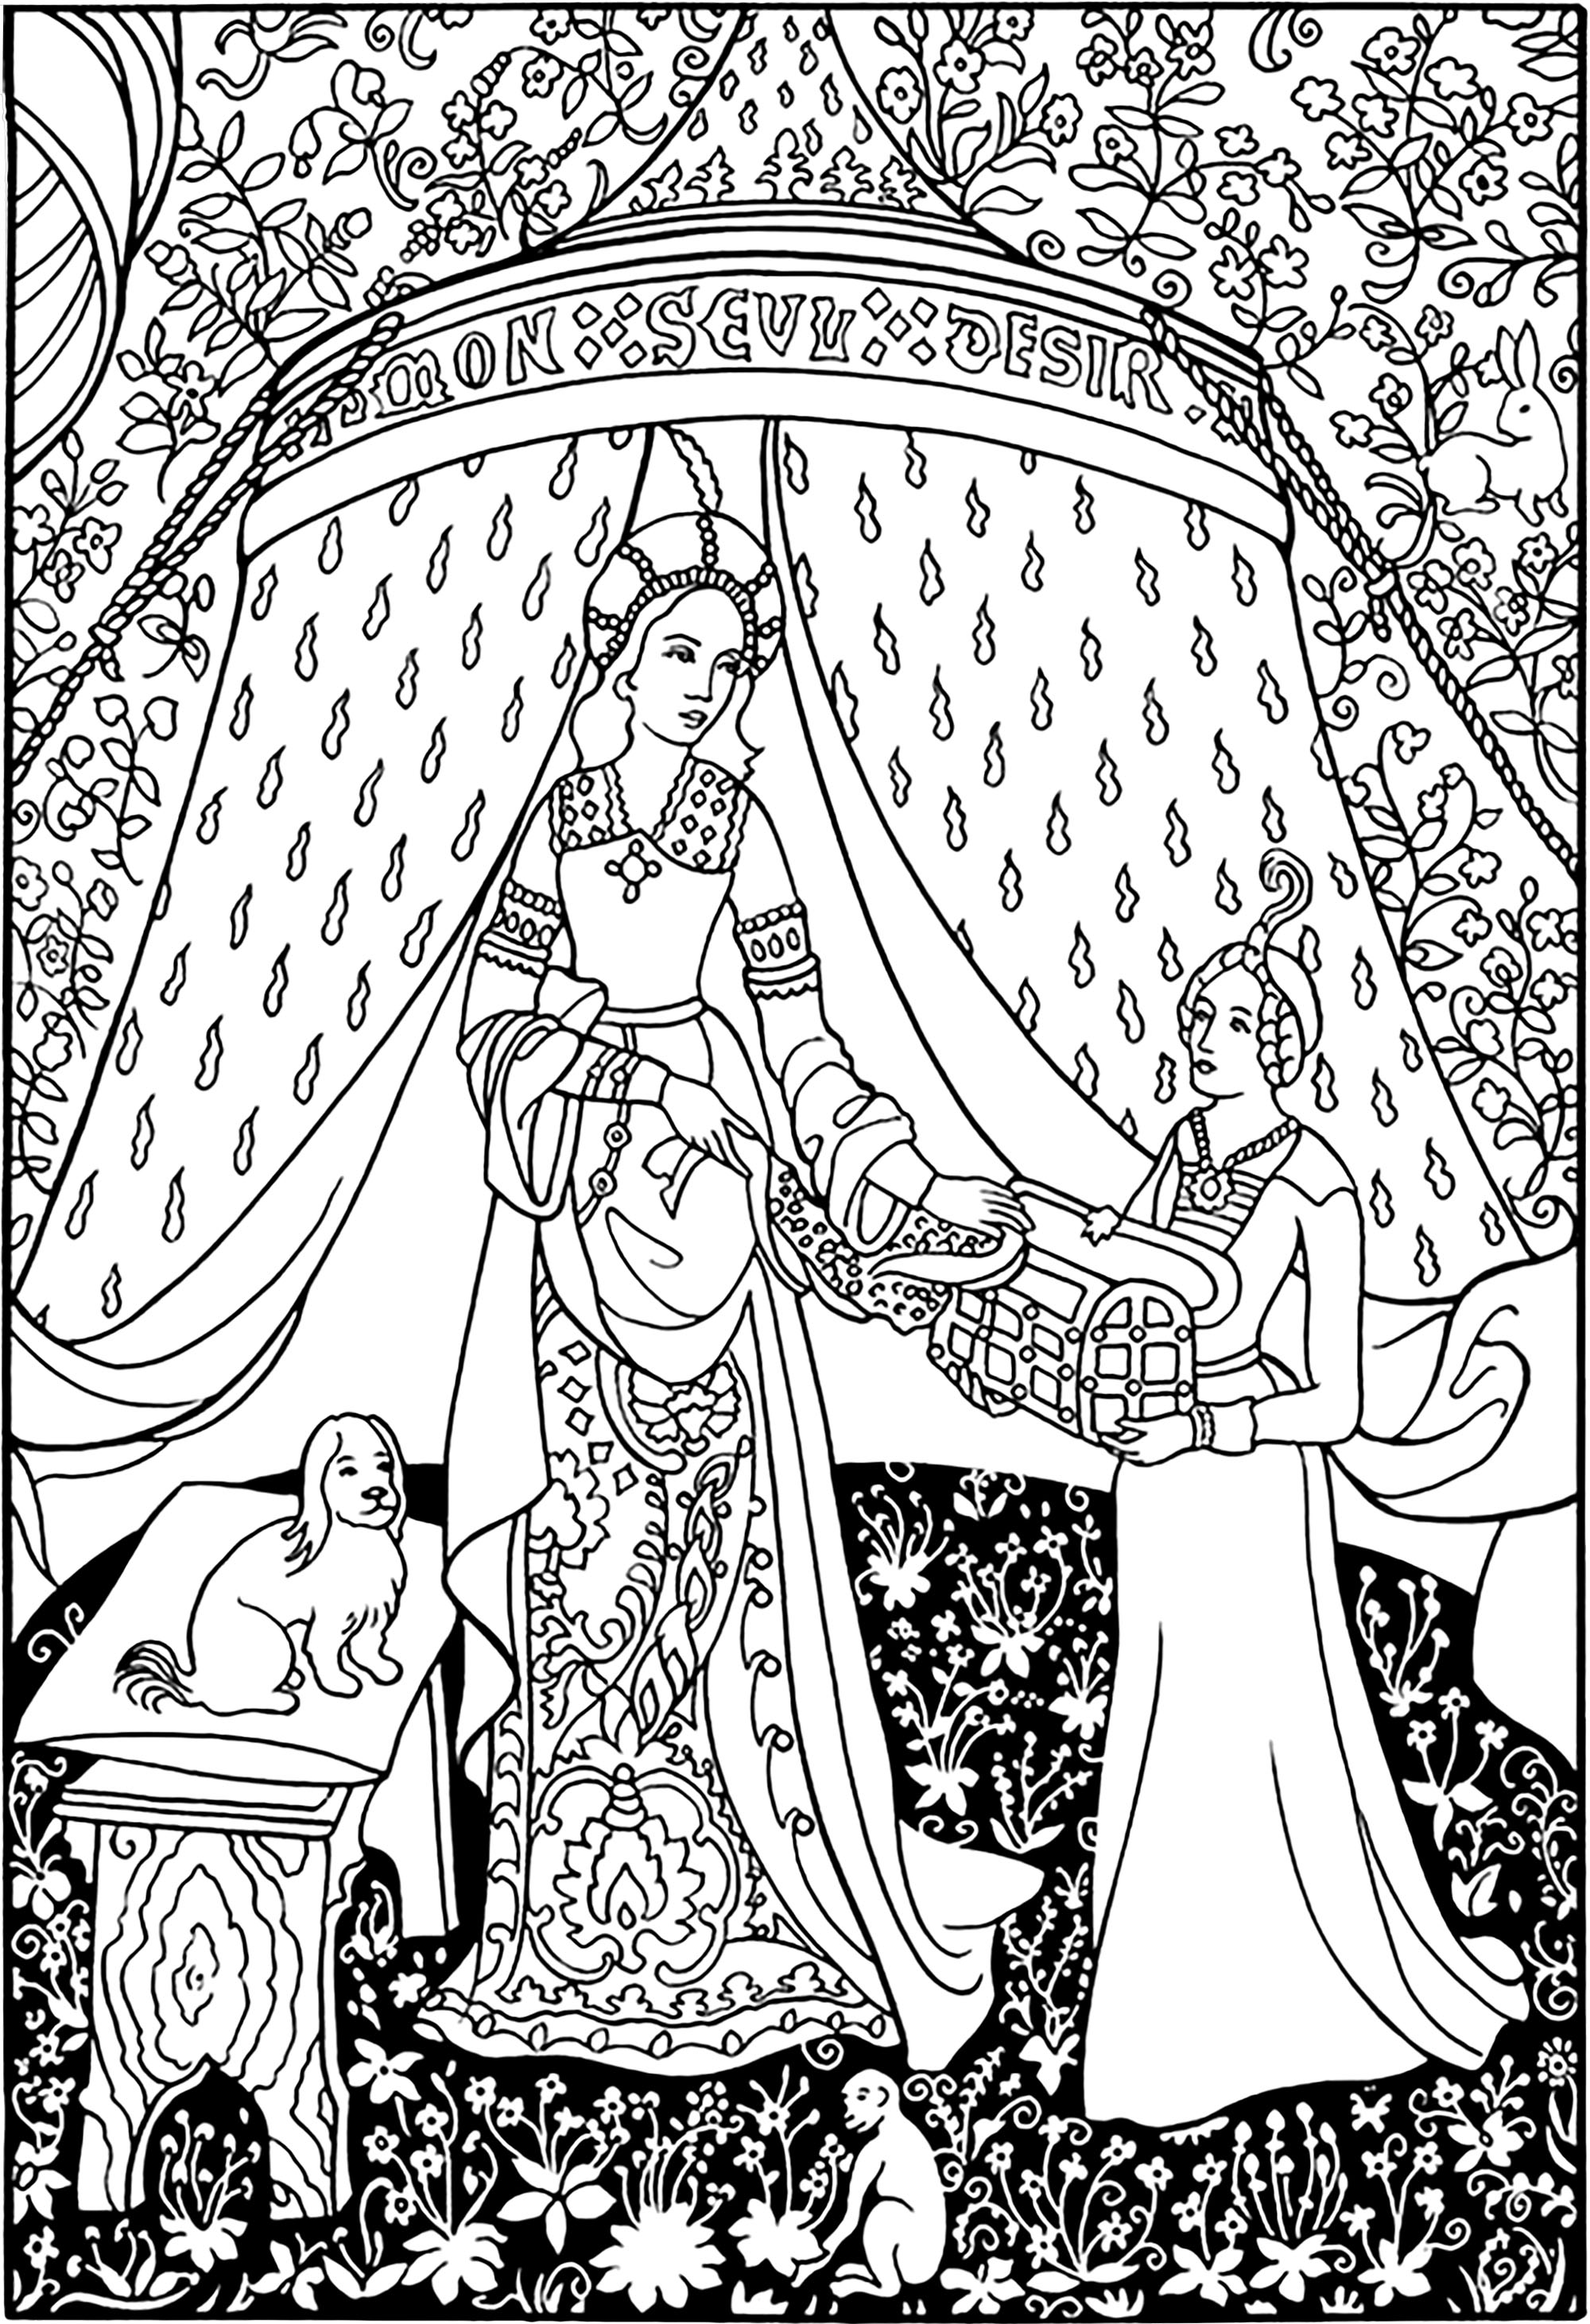 Coloring page created from a detail of the tapestry the lady with the unicorn